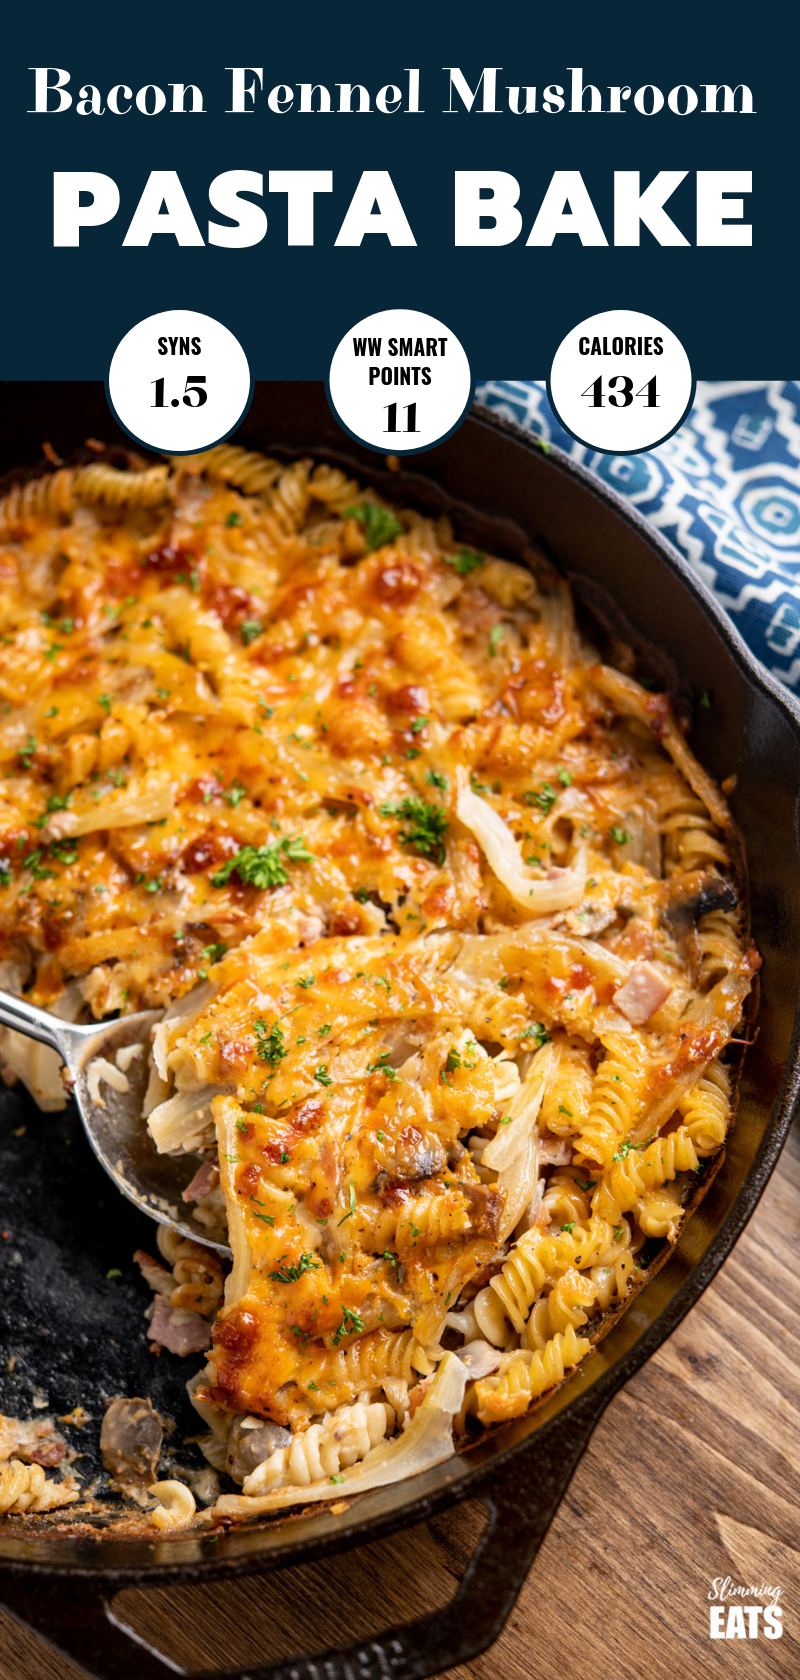 Bacon, Fennel and Mushroom Pasta Bake pin image